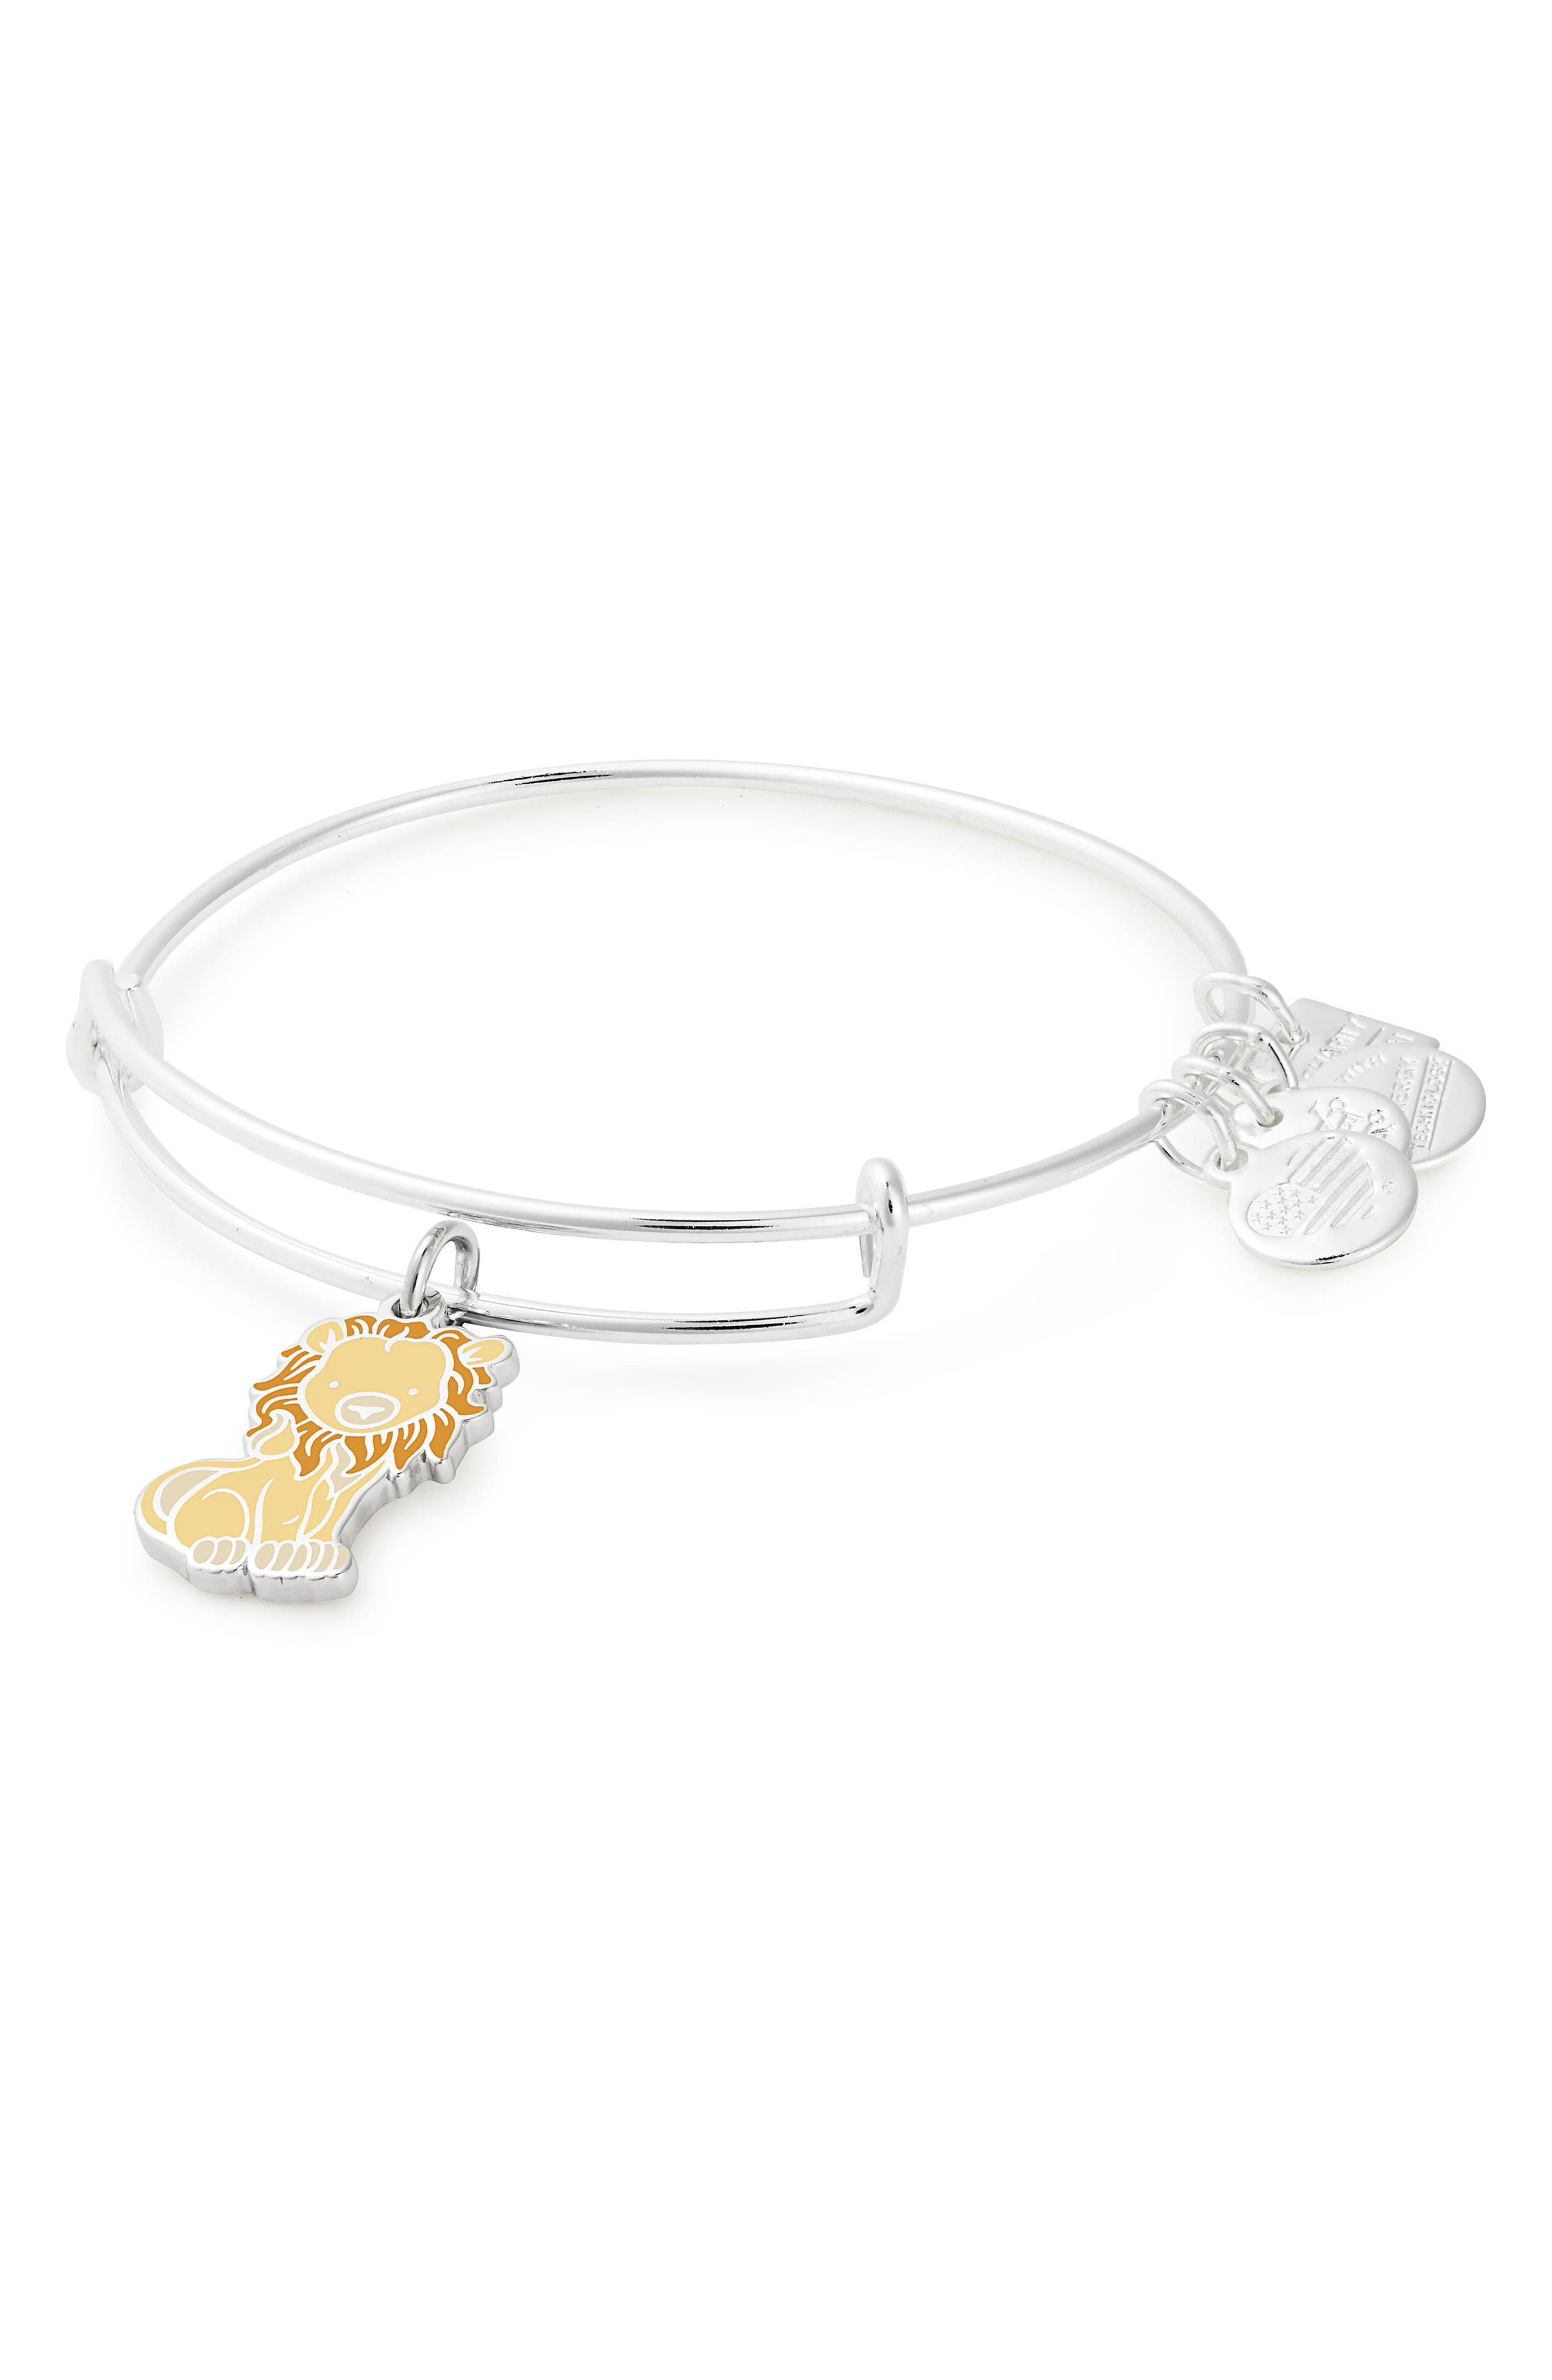 ALEX AND ANI Charity by Design - Lion Adjustable Wire Bangle, Main, color, SILVER